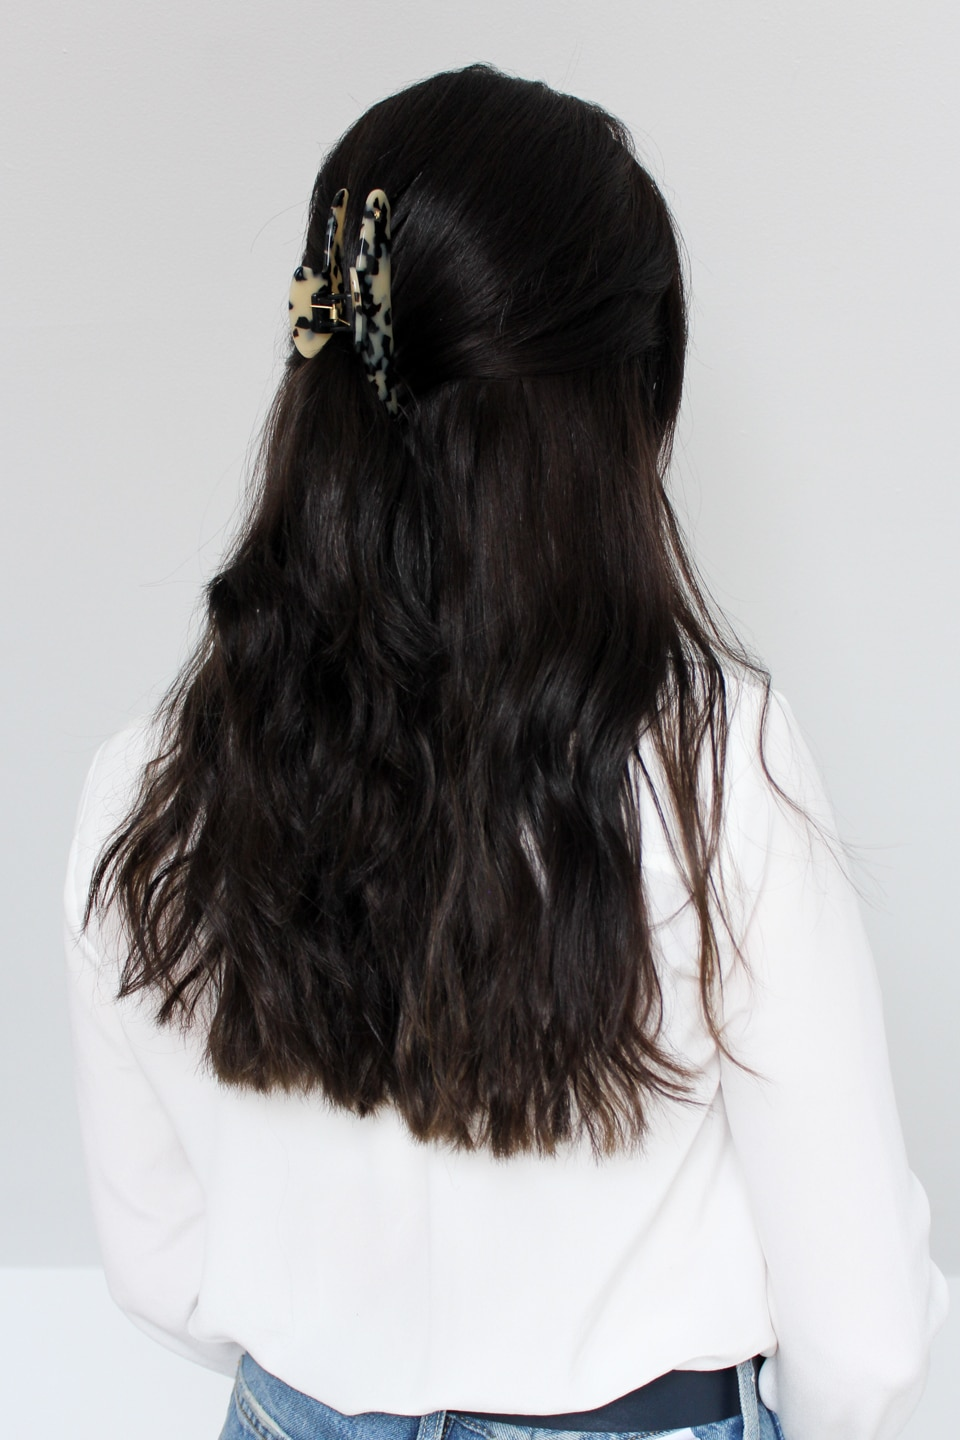 Back of woman's head with hair down and held with clip